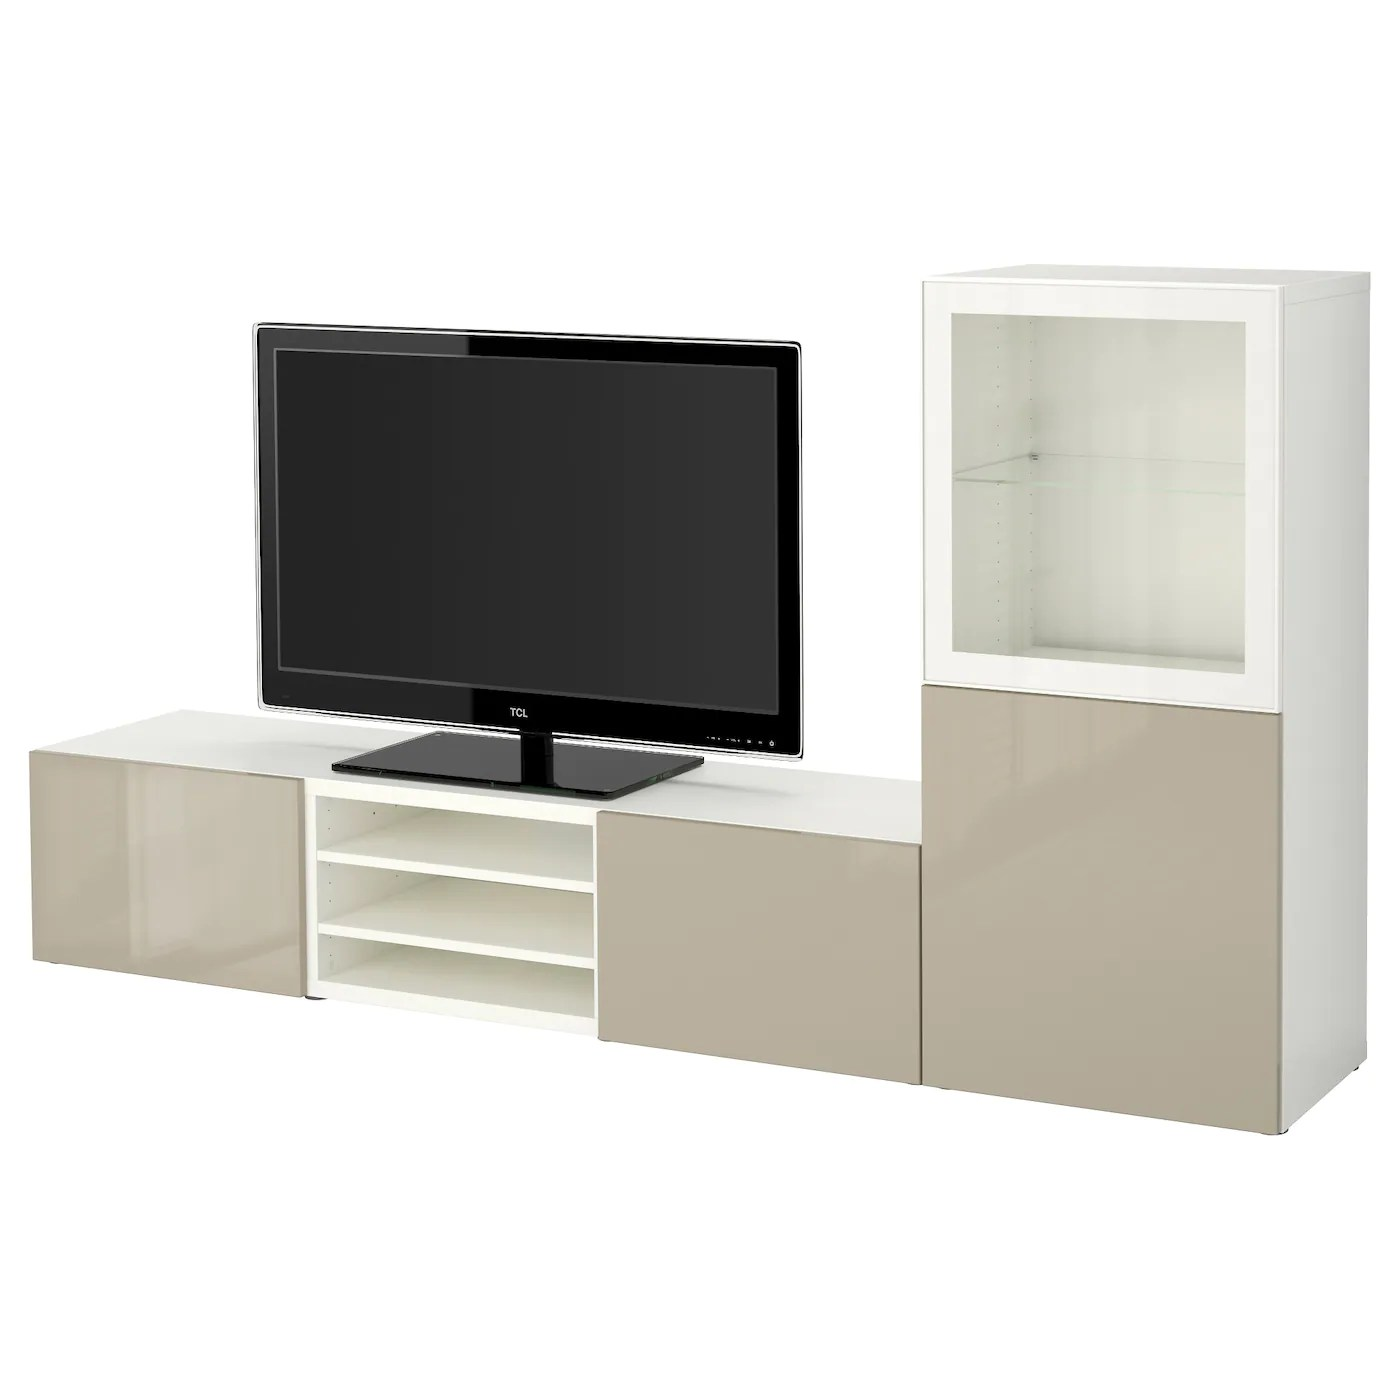 Grand Meuble Tv Blanc Grand Meuble Tv Ikea